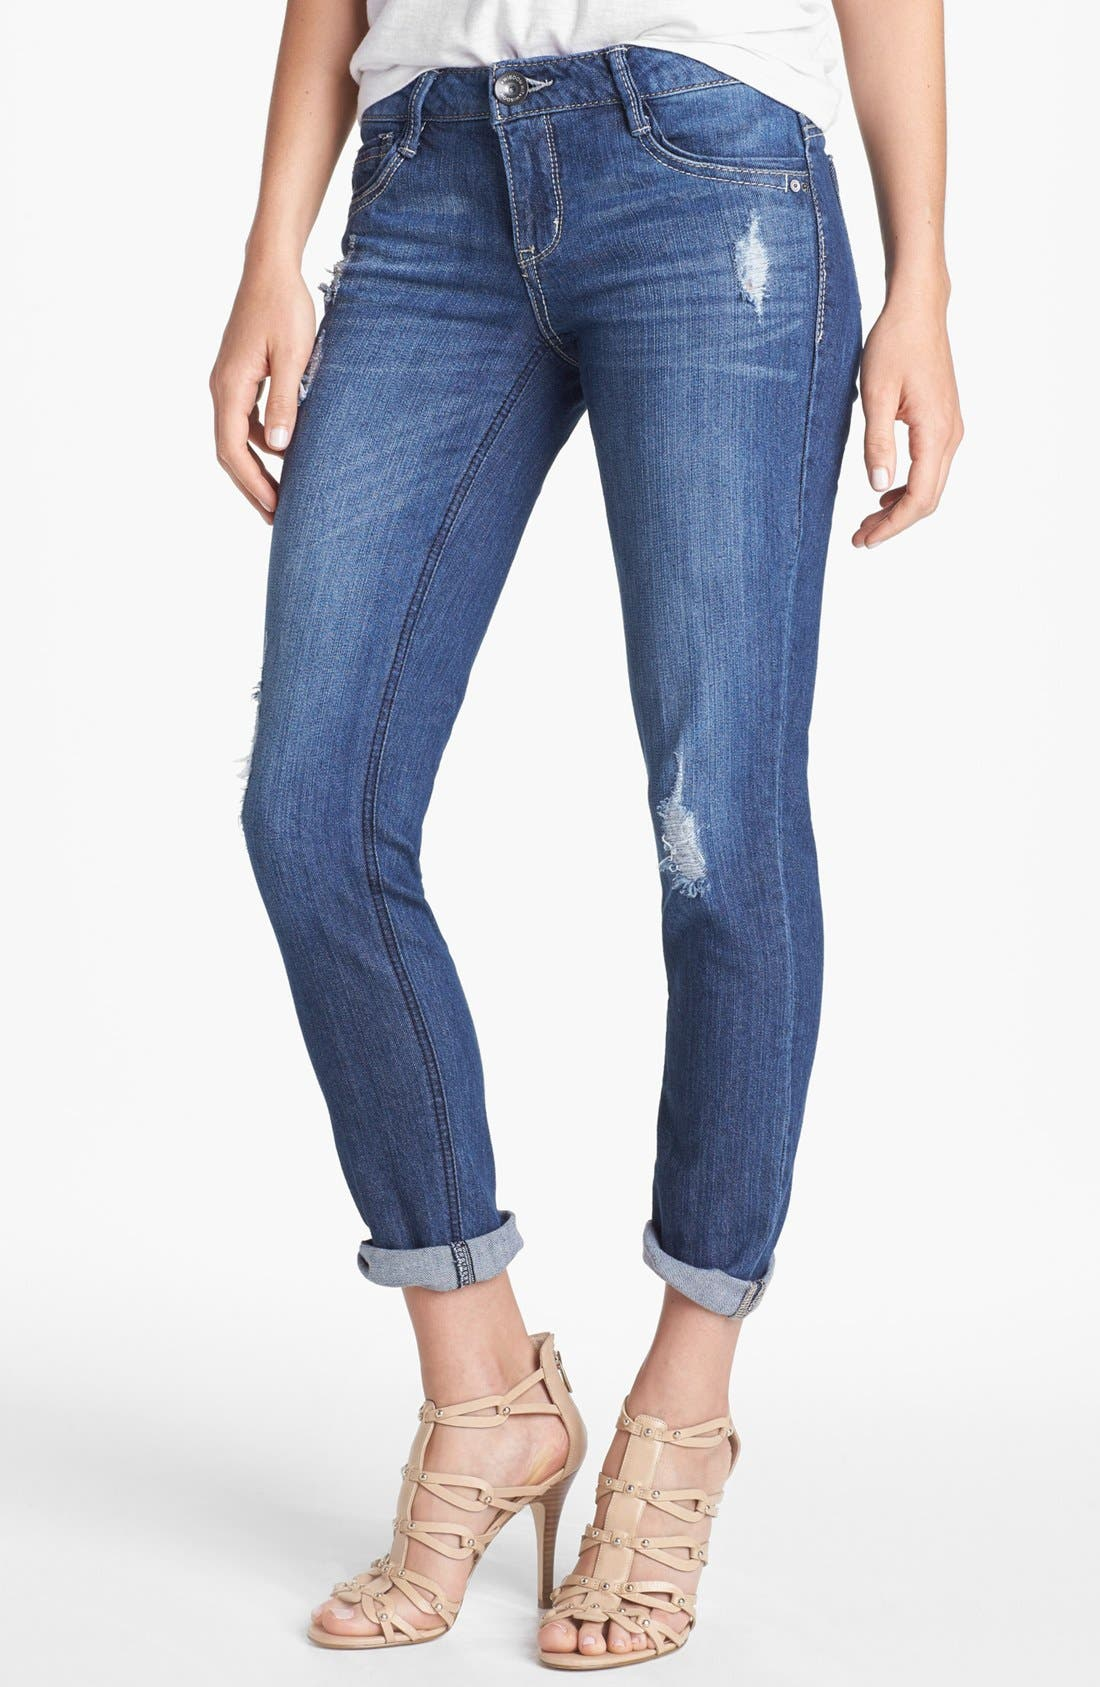 Alternate Image 1 Selected - Wit & Wisdom Distressed Boyfriend Skinny Jeans (Indigo) (Nordstrom Exclusive)